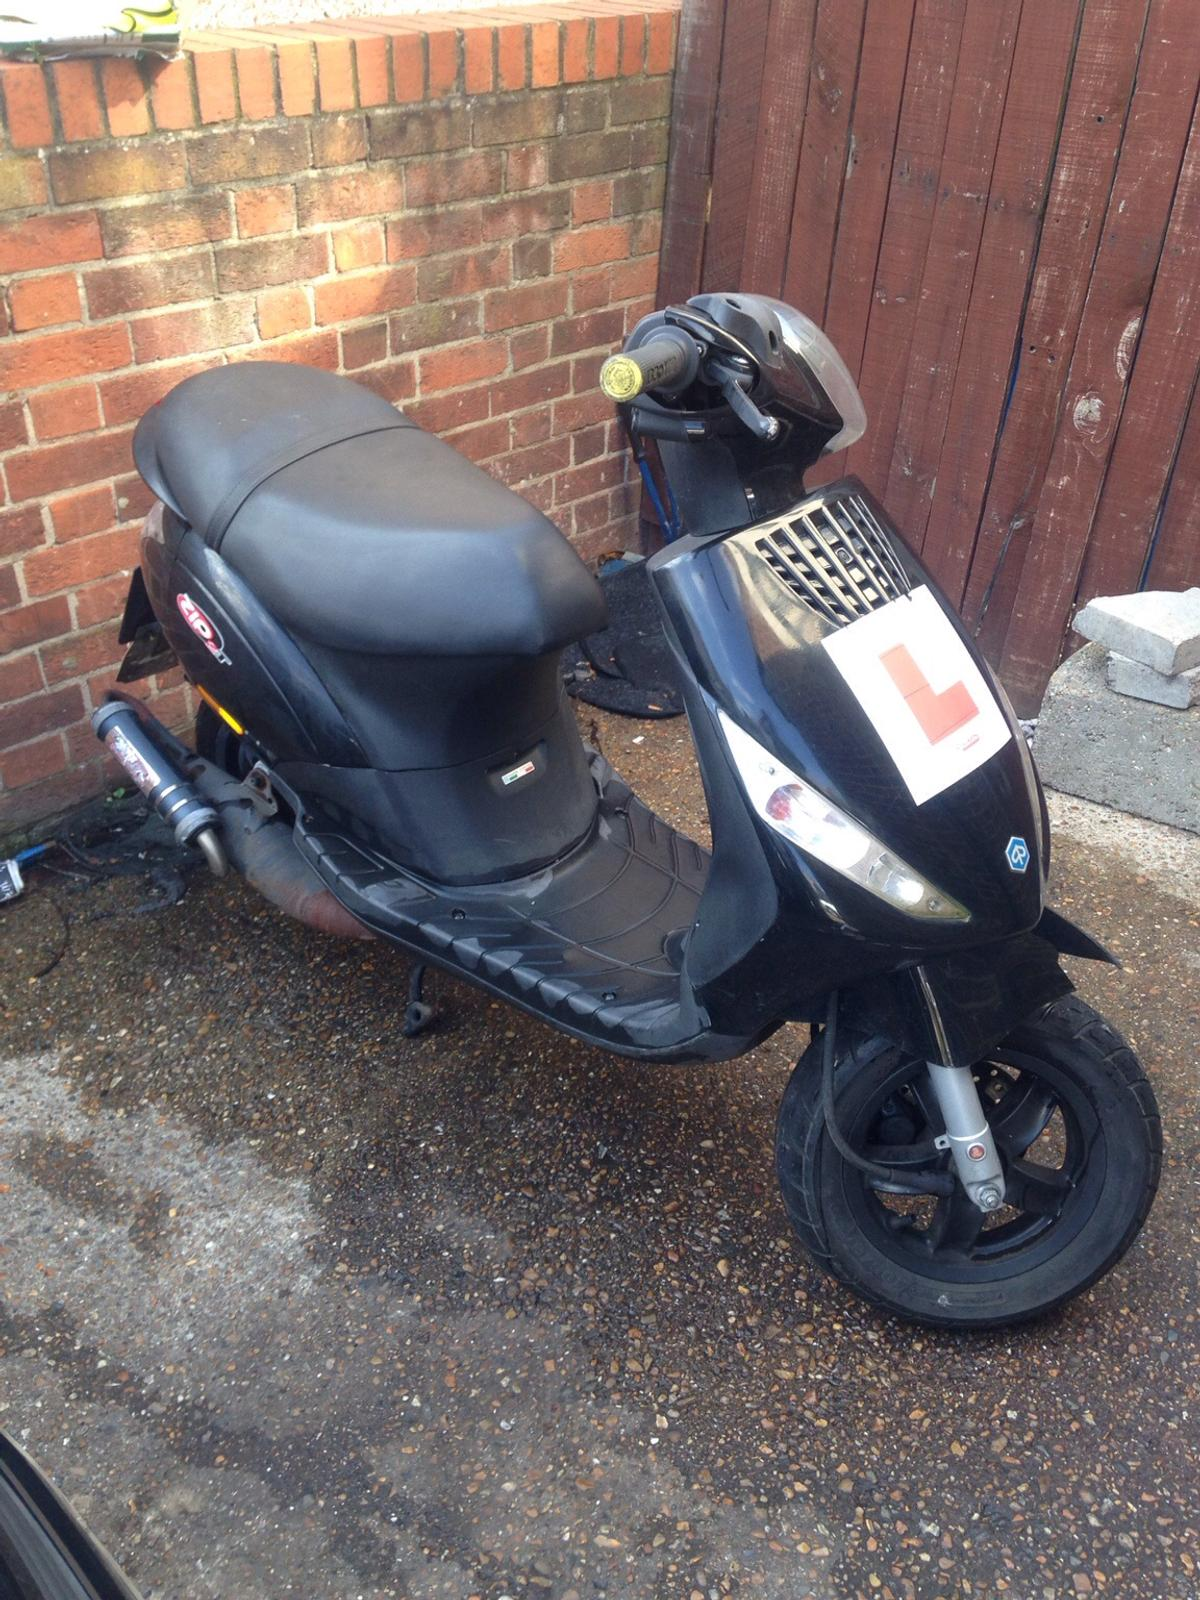 Piaggio zip 70cc in SE13 Lewisham for £750 00 for sale - Shpock